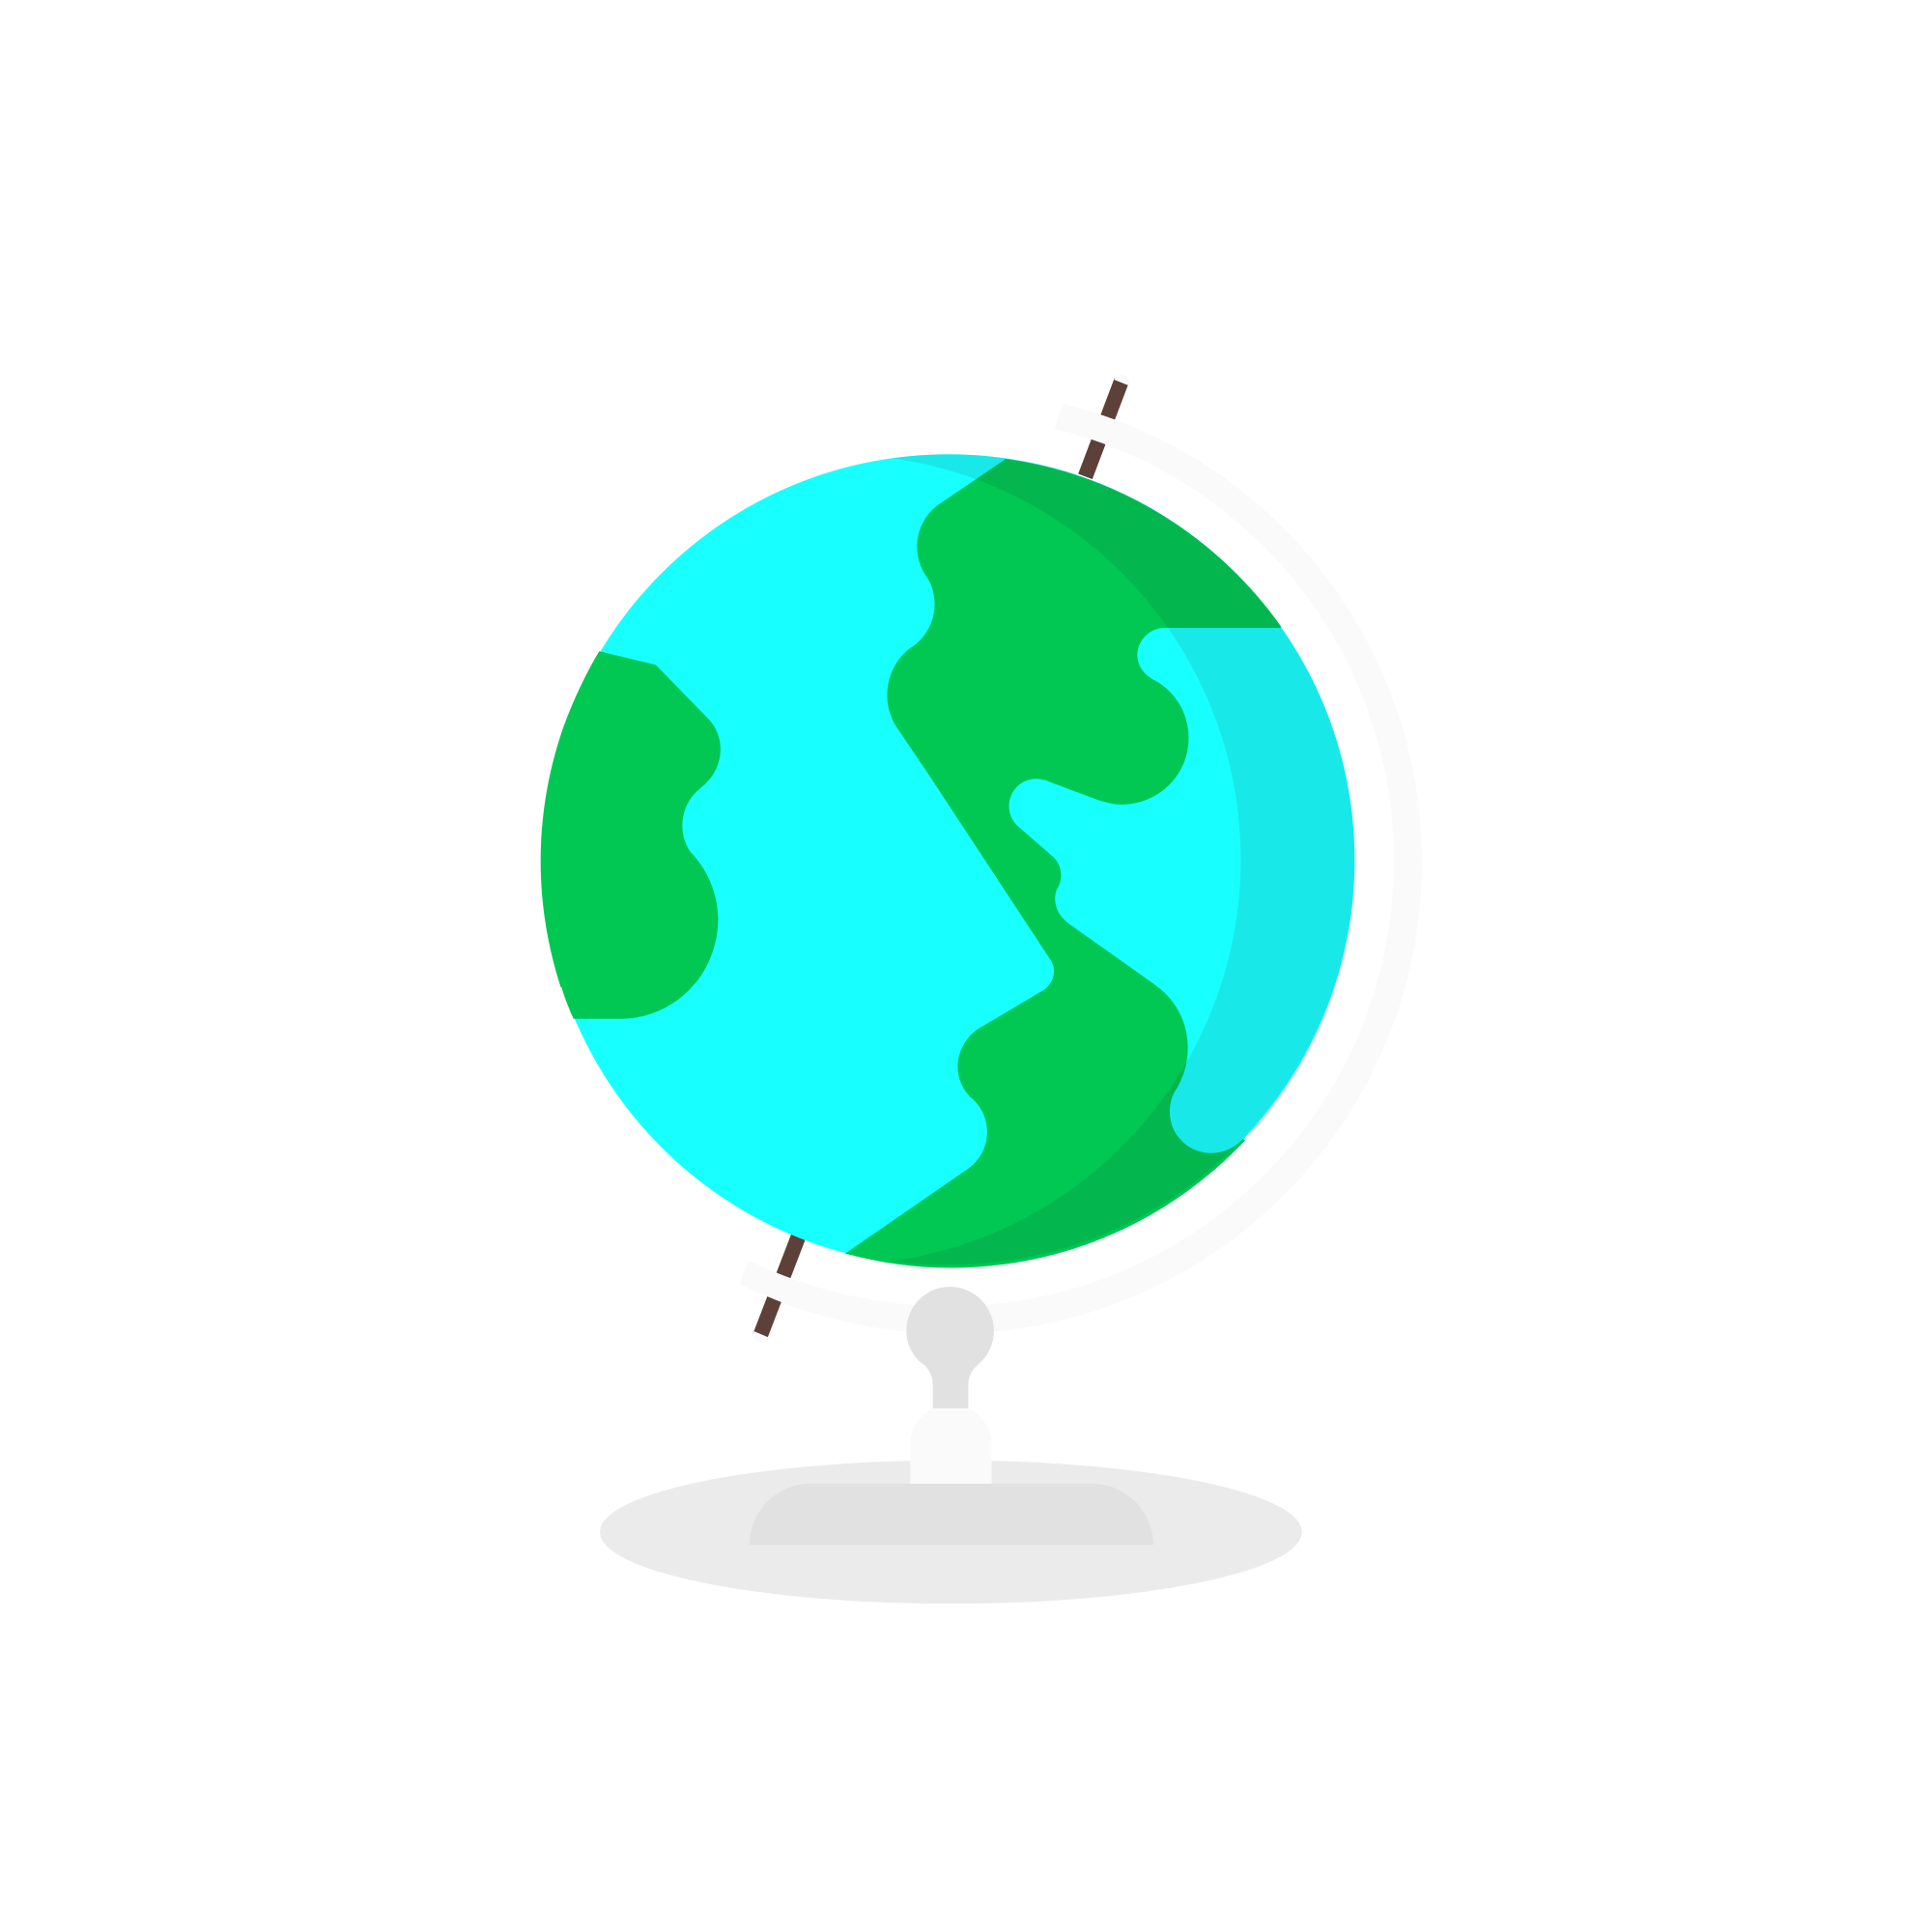 File topeka svg wikimedia. Geography clipart current event